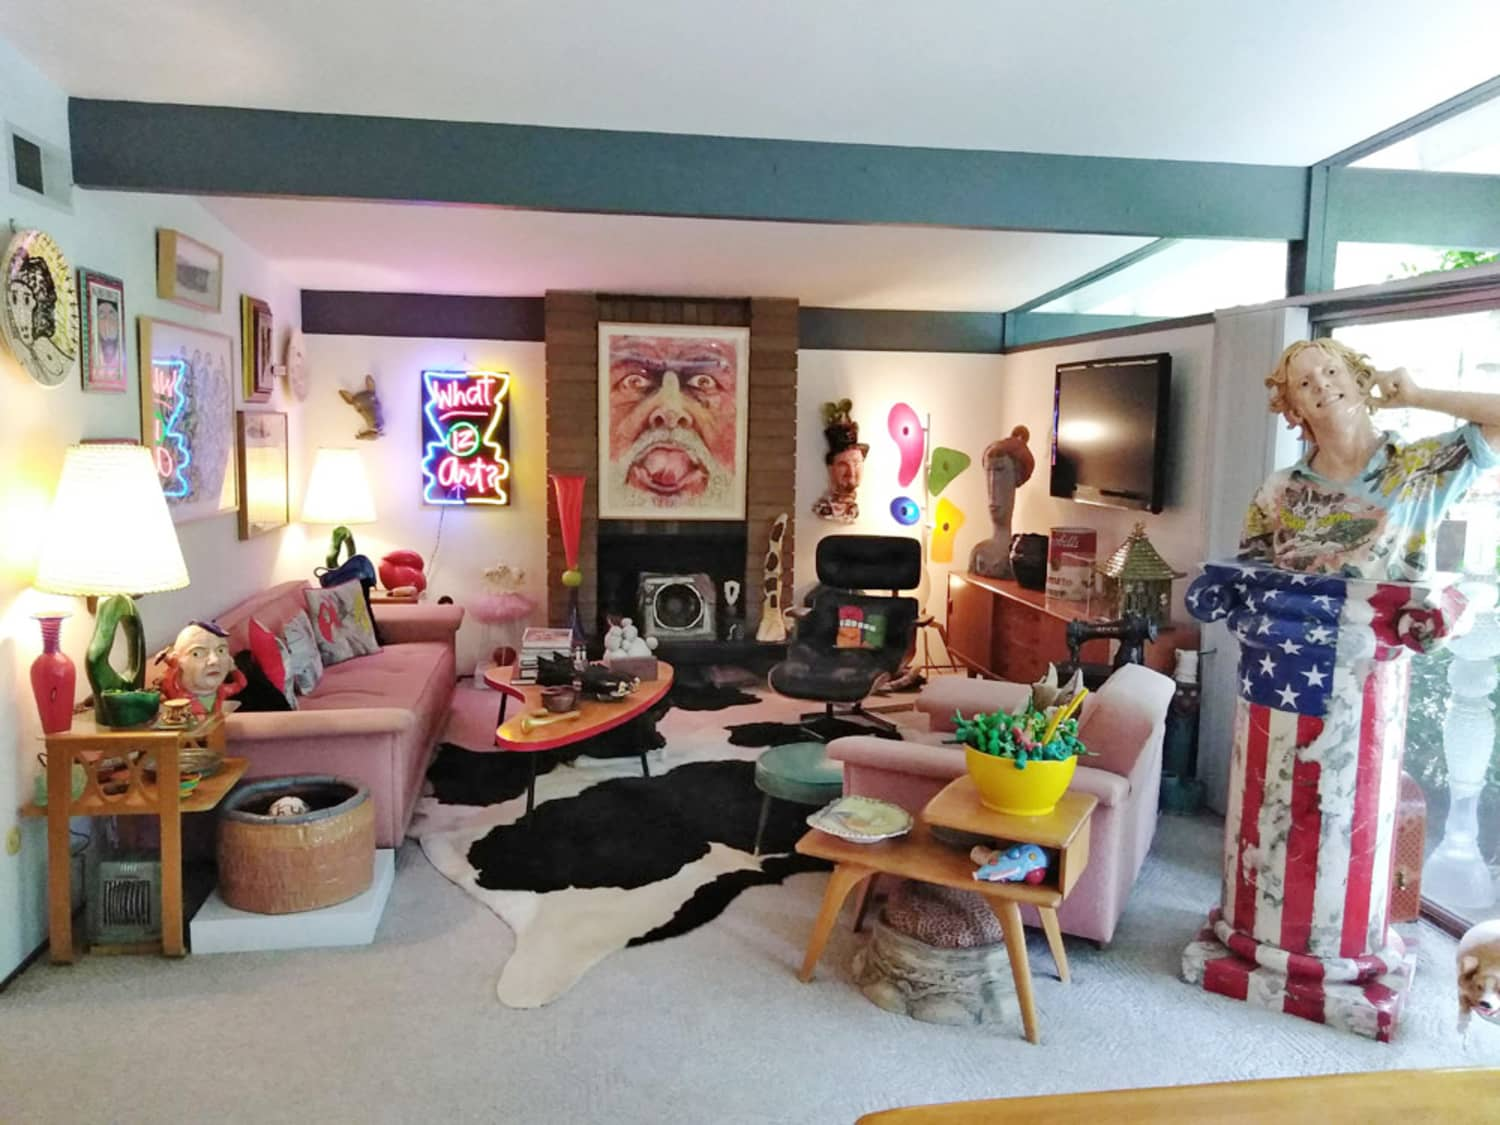 See Inside This Sculptor's Incredibly Colorful Art-Filled Mid-Century Modern Home